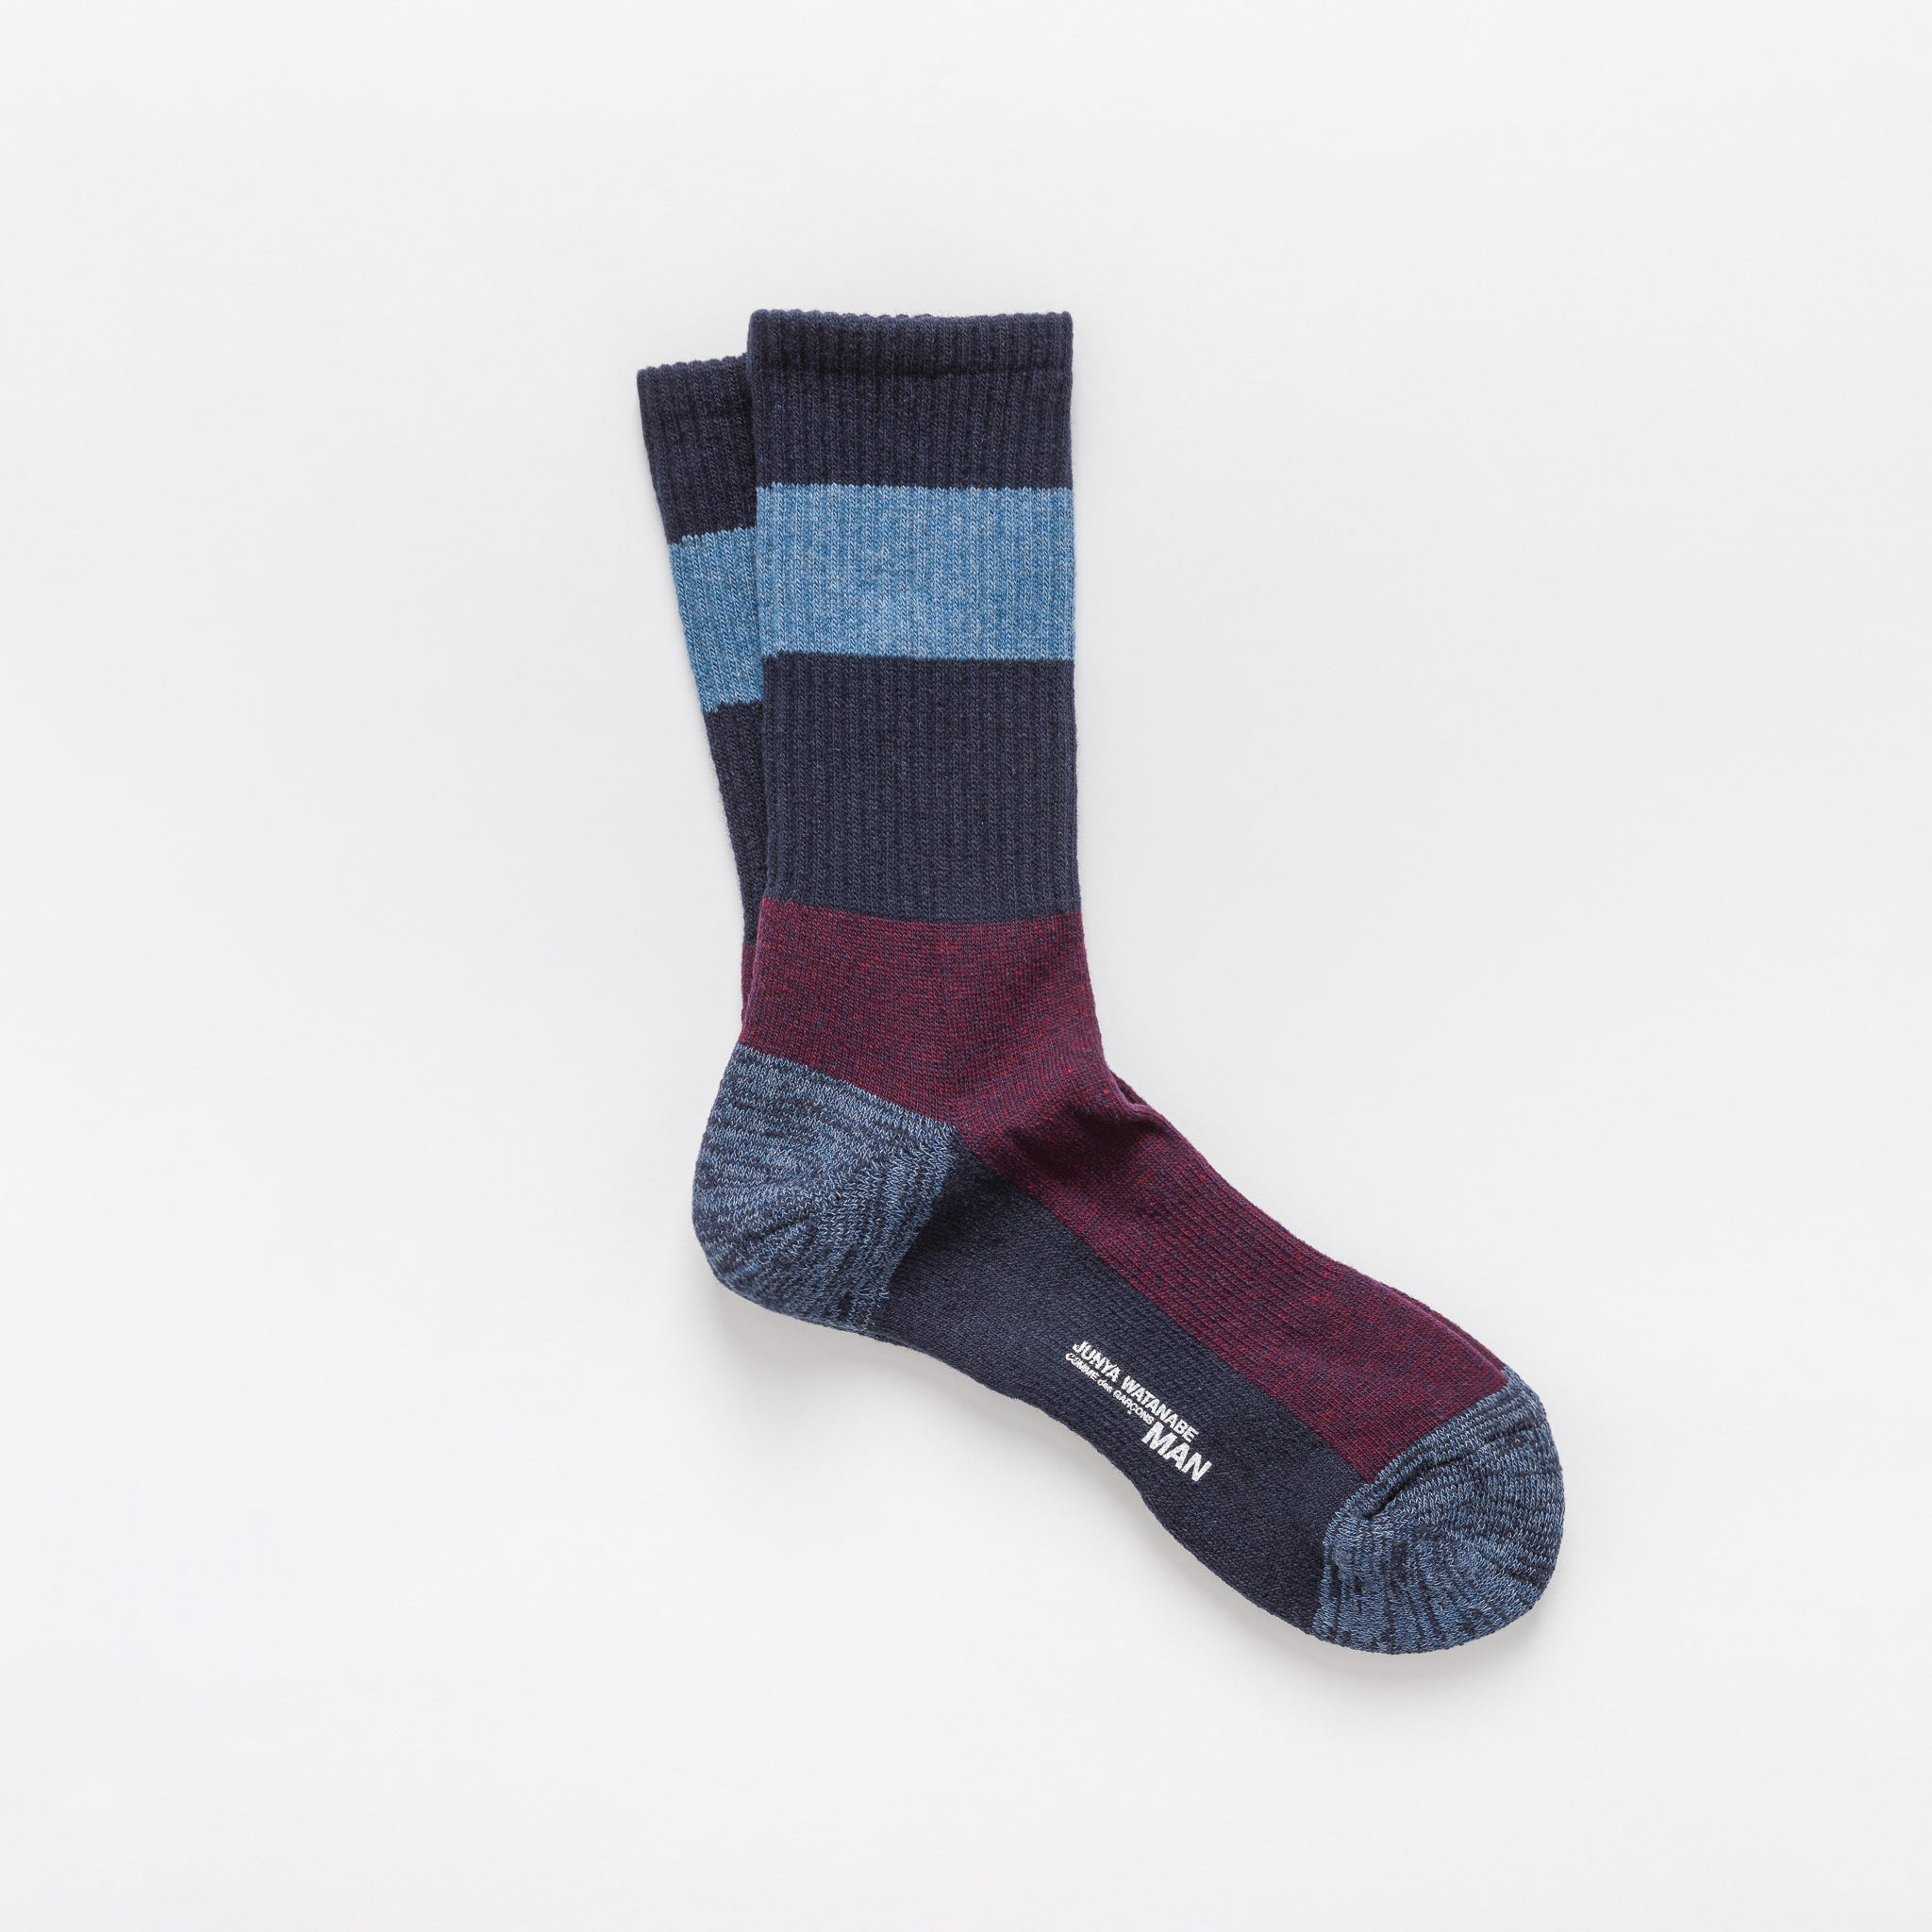 Wool Blend Crew Socks in Navy/Burgundy